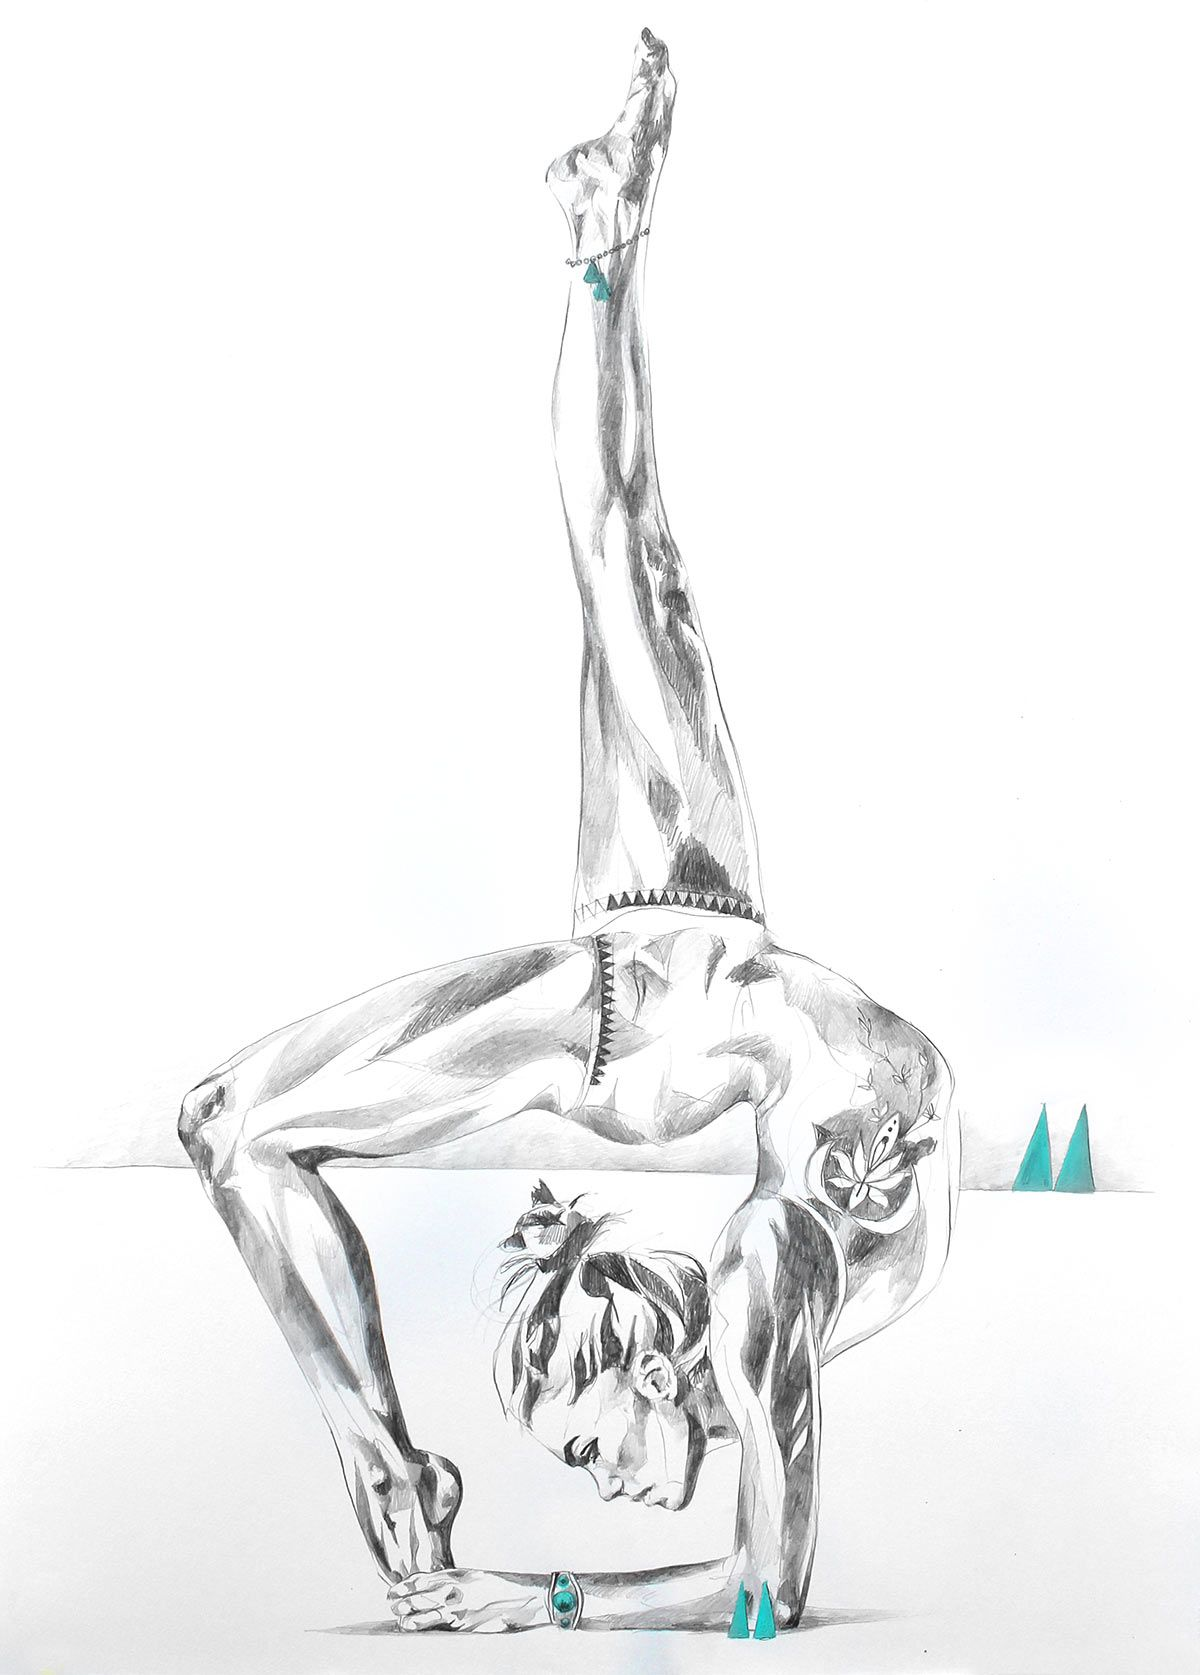 Temple of the sun strong yoga backbend drawing in pencil with inner peace by hannah adamaszek online shop and gallery